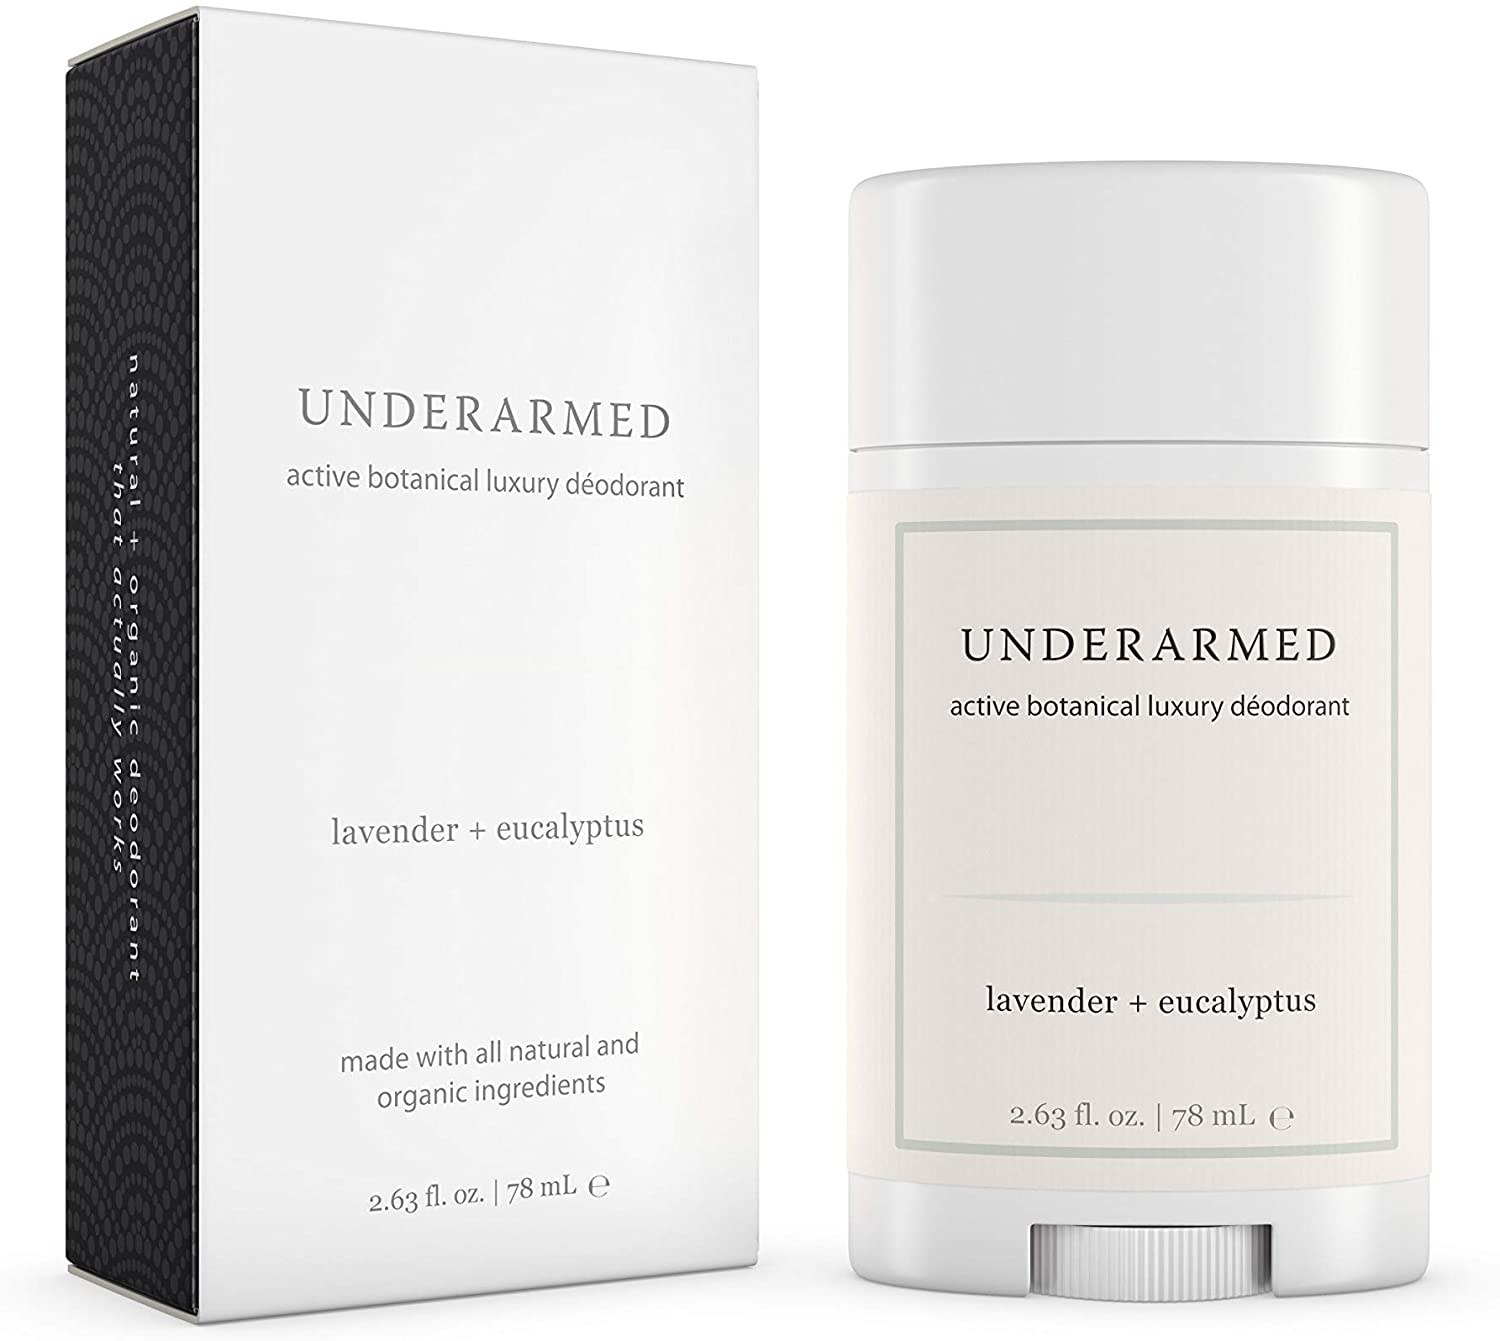 Product photo showing packaging and stick of UNDERARMED active botanical luxury deodorant in lavender and eucalyptus scent.